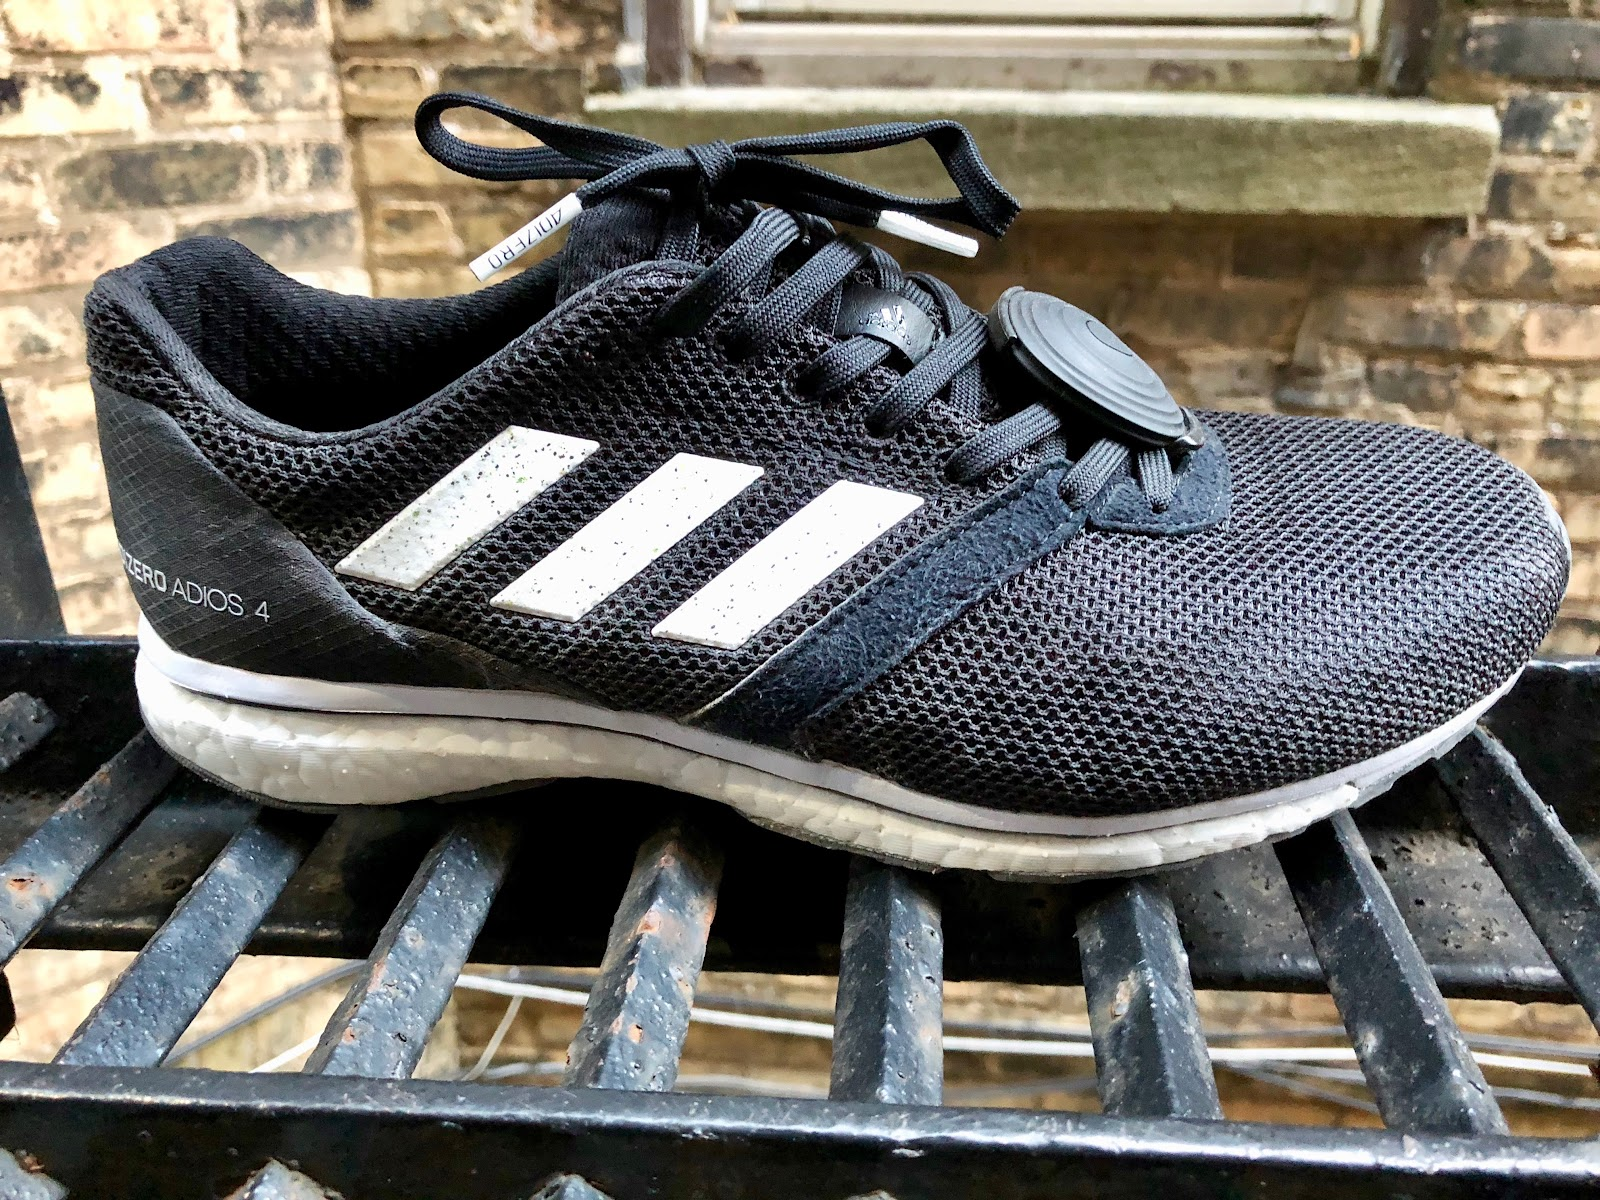 official photos 6b527 9a422 Road Trail Run: adidas adizero adios 4 Review: Fast Classic ...